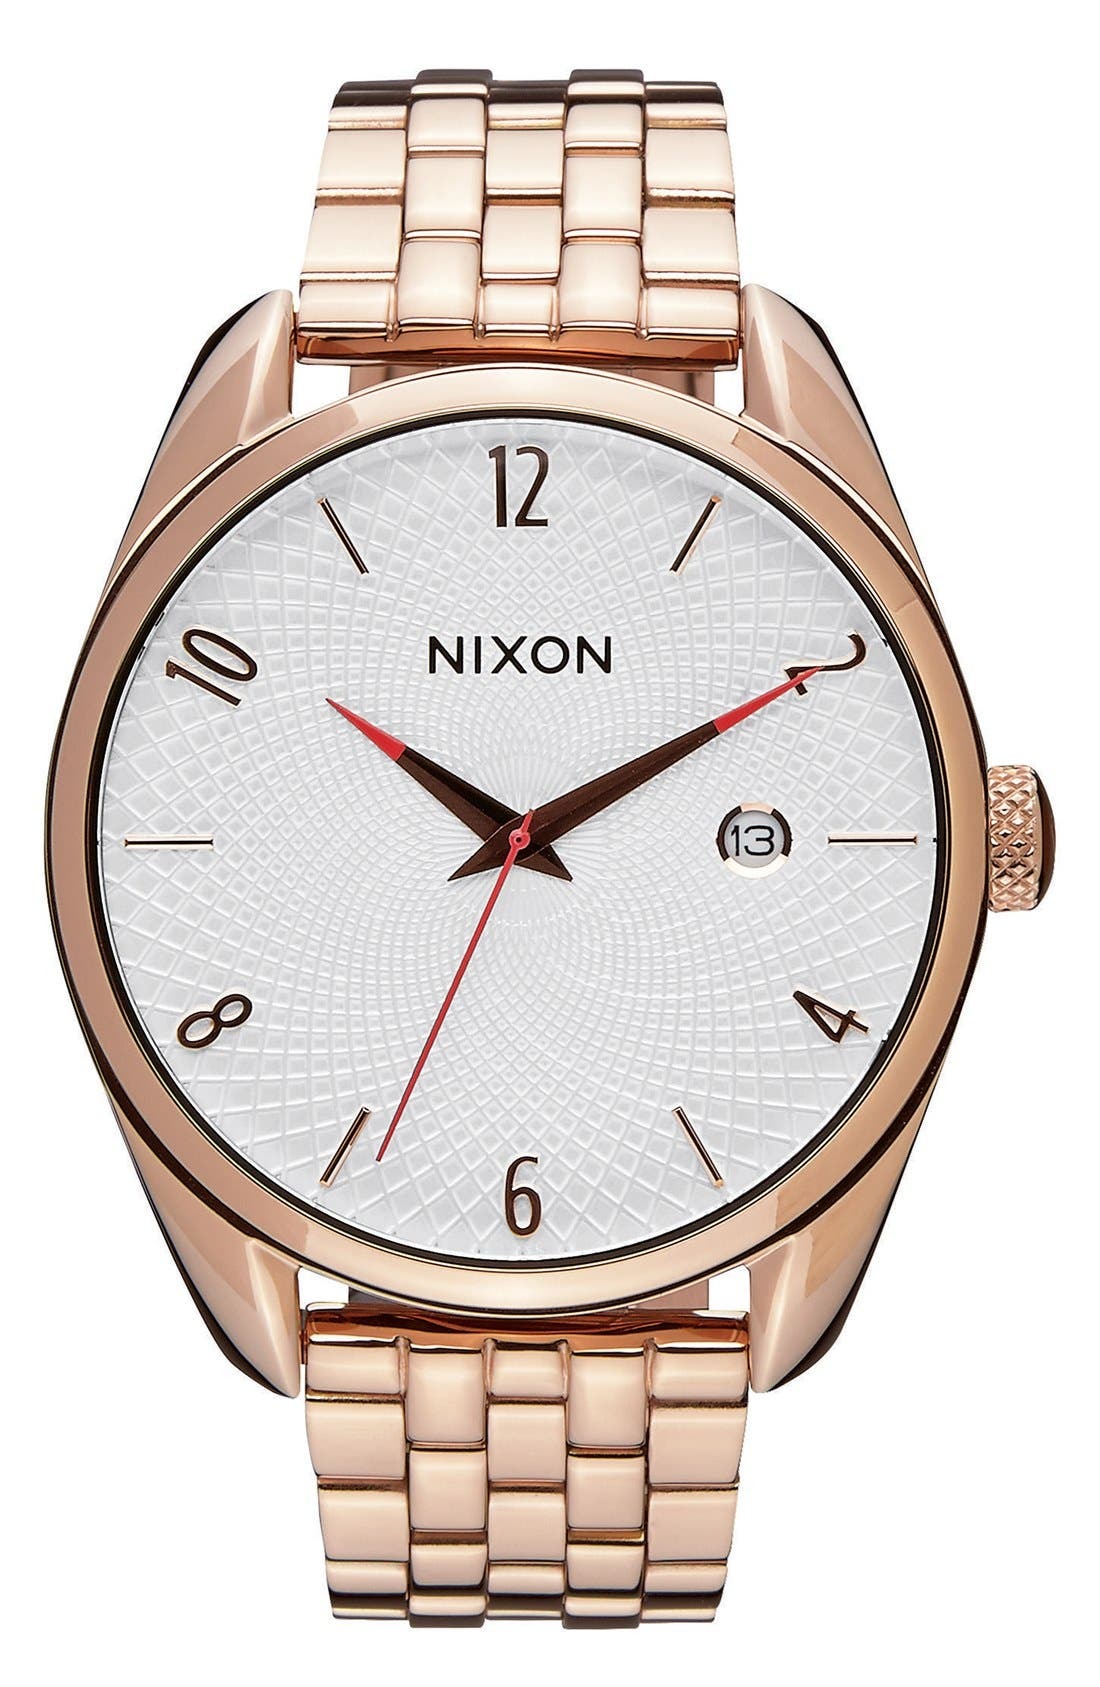 NIXON The Bullet Bracelet Watch, 38mm